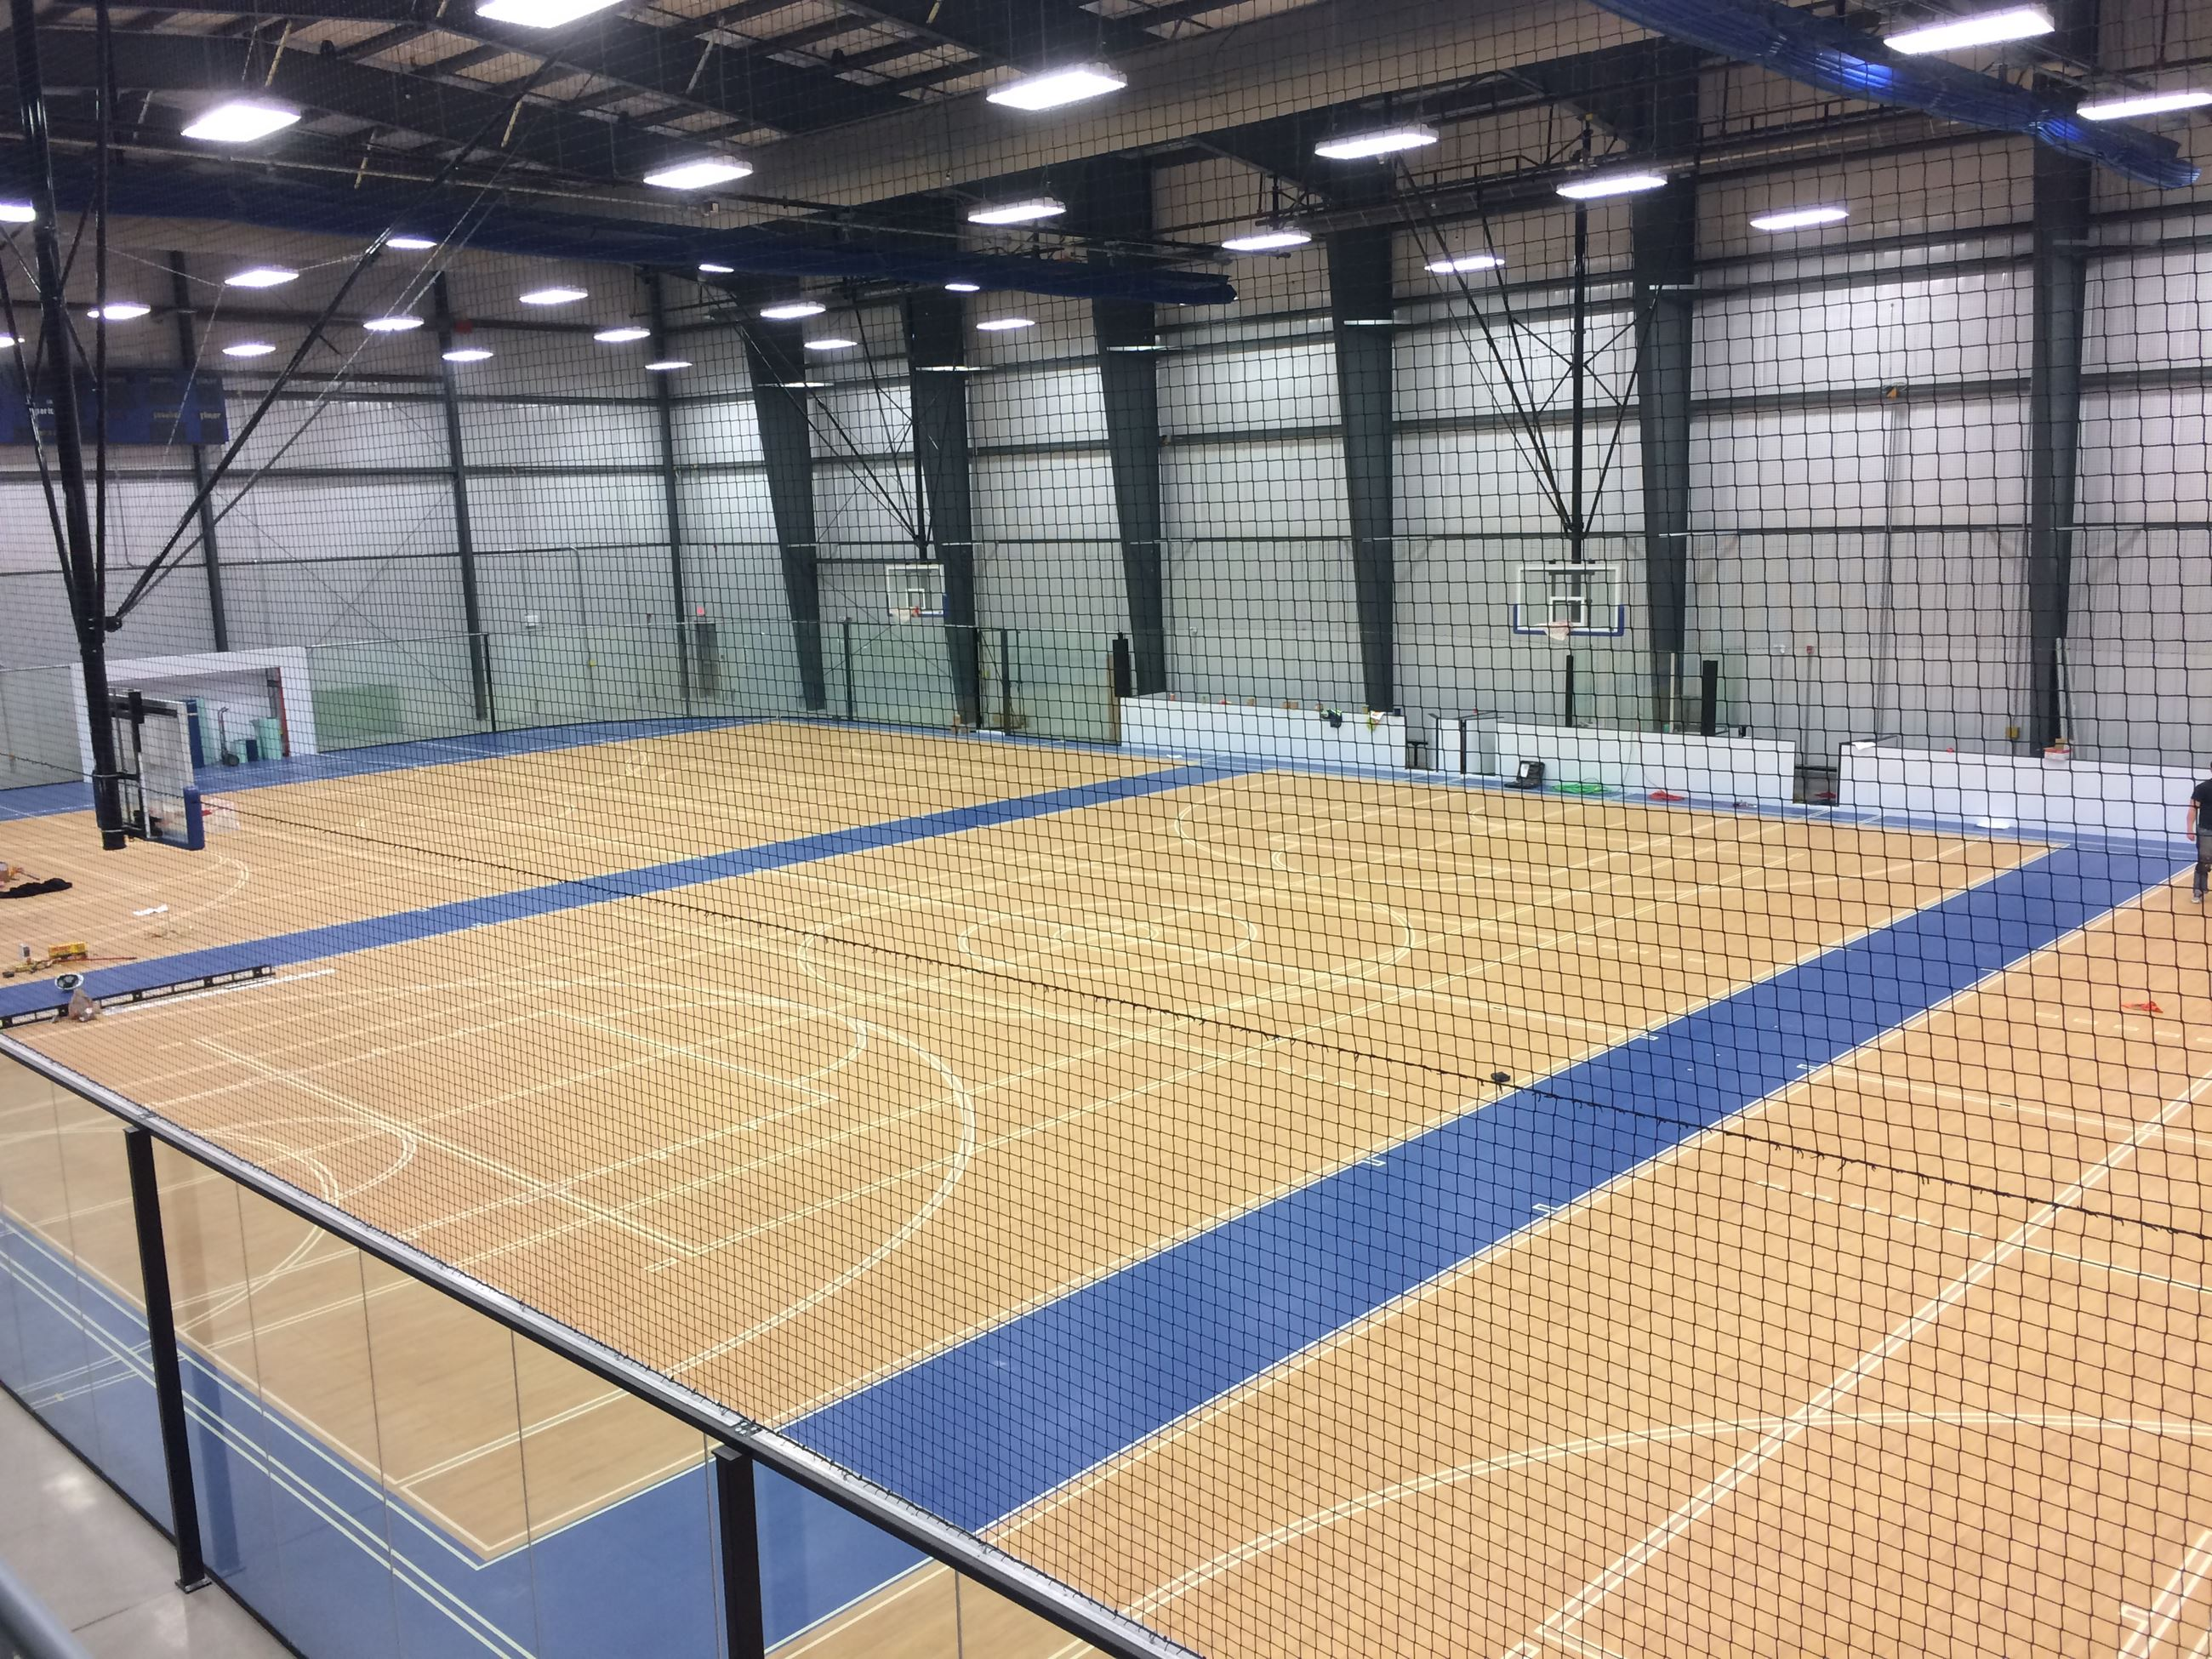 Fieldhouse Courts